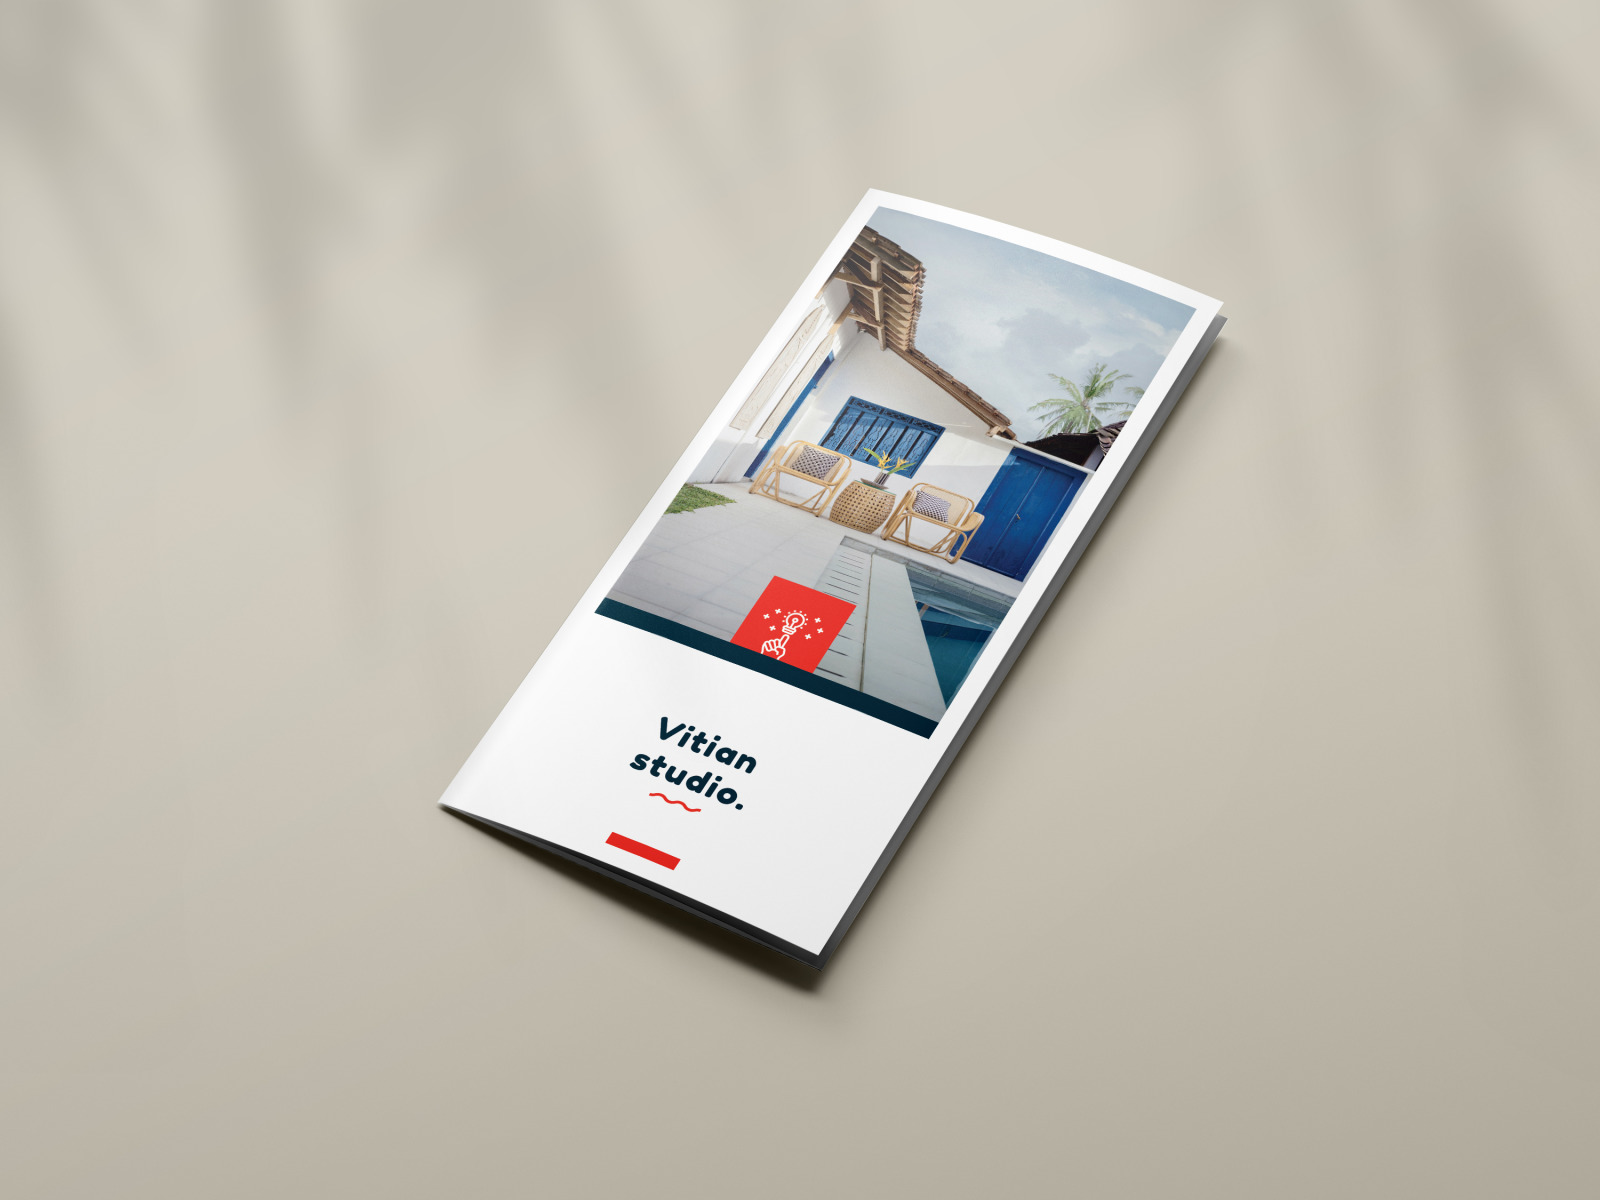 Download Square Flyer Mockup Free Download PSD - Free PSD Mockup Templates